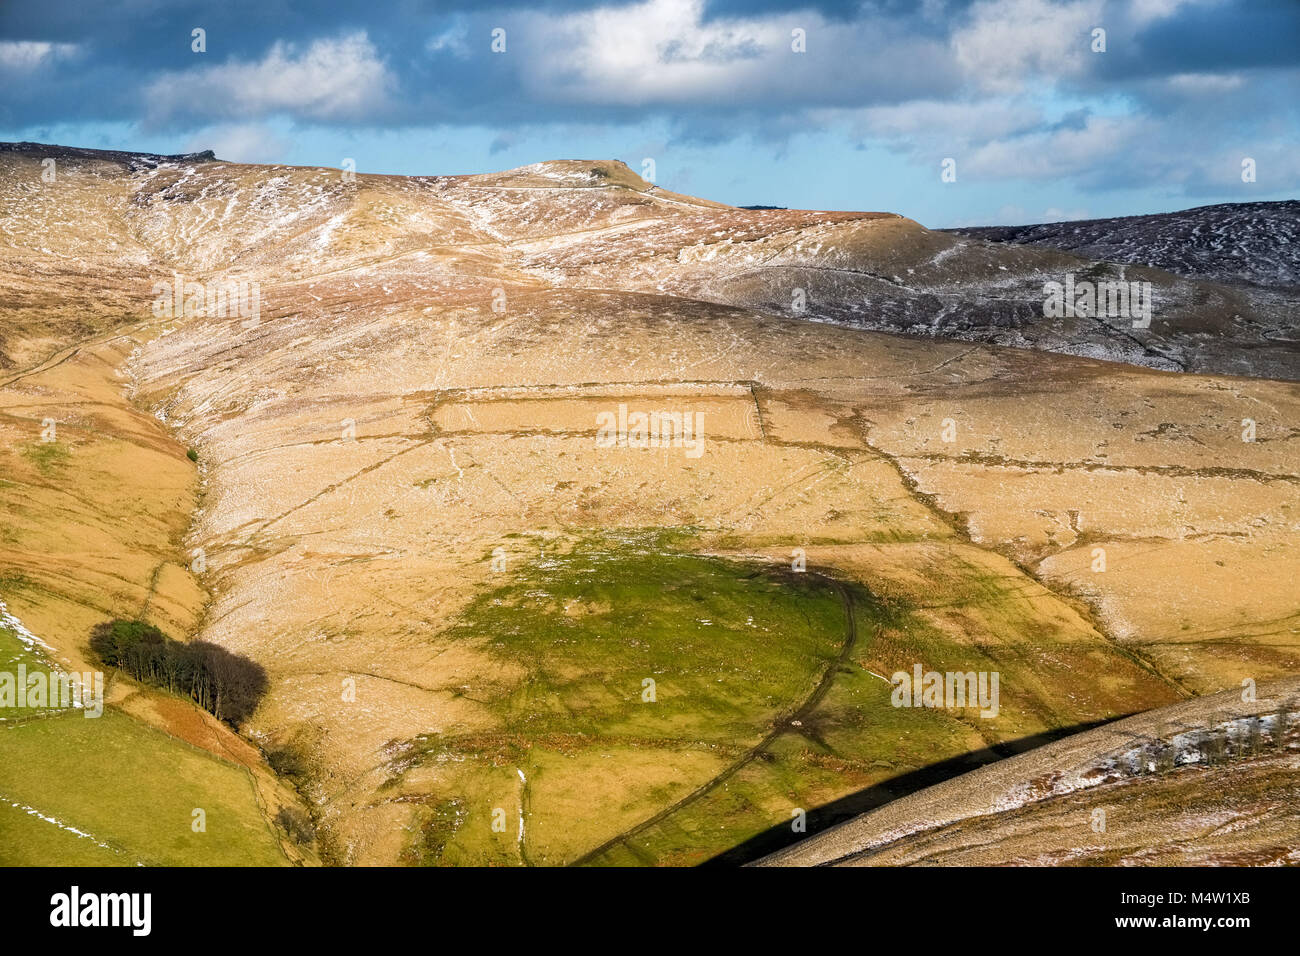 Looking from South Head towards Edale Rocks, Swine's Back, Edale Cross. Kinder Scout, Peak District National - Stock Image